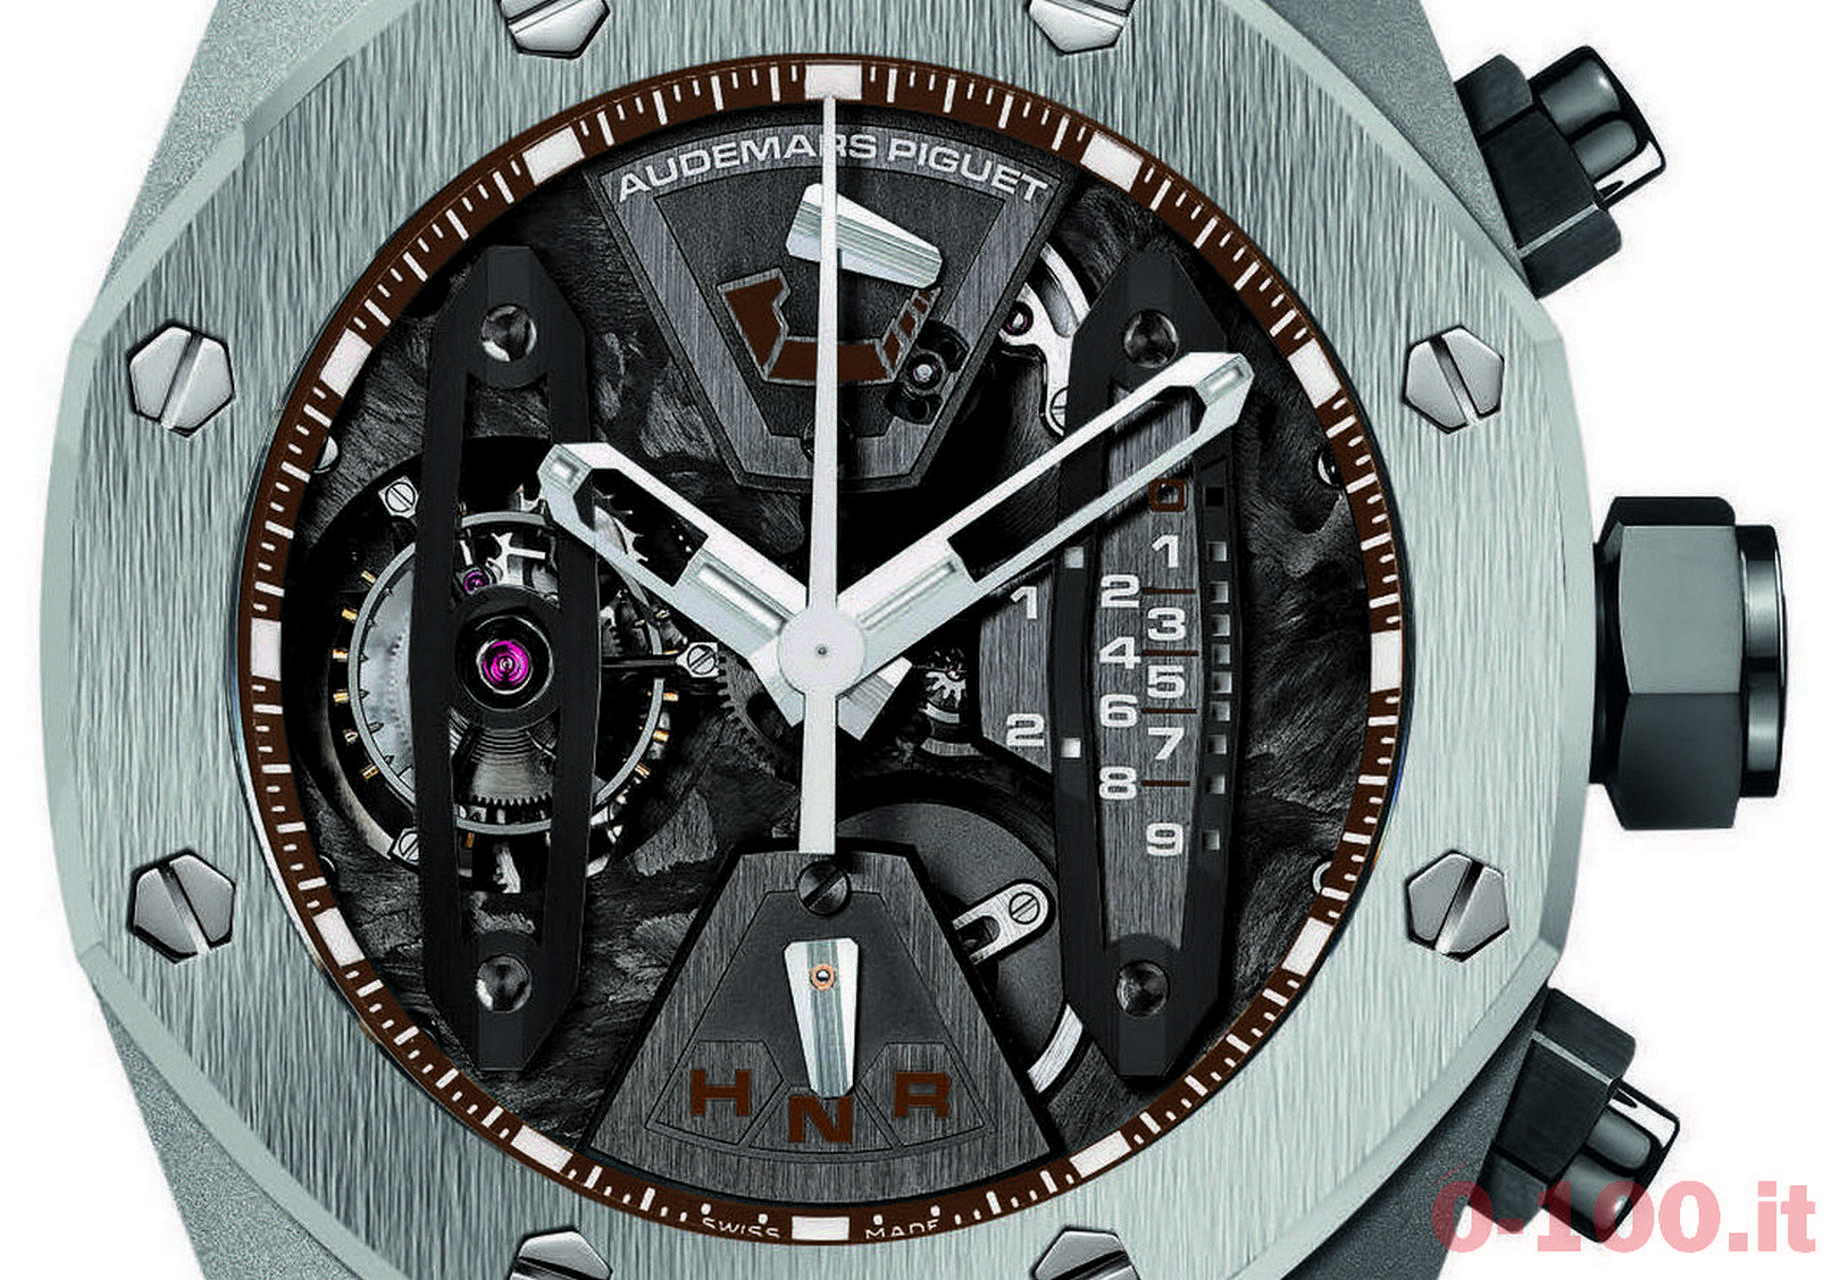 sihh-2015-audemars-piguet-tourbillon-cronografo-royal-oak-concept-44-mm-ref-26223ti-oo-d099cr-01_0-100_1